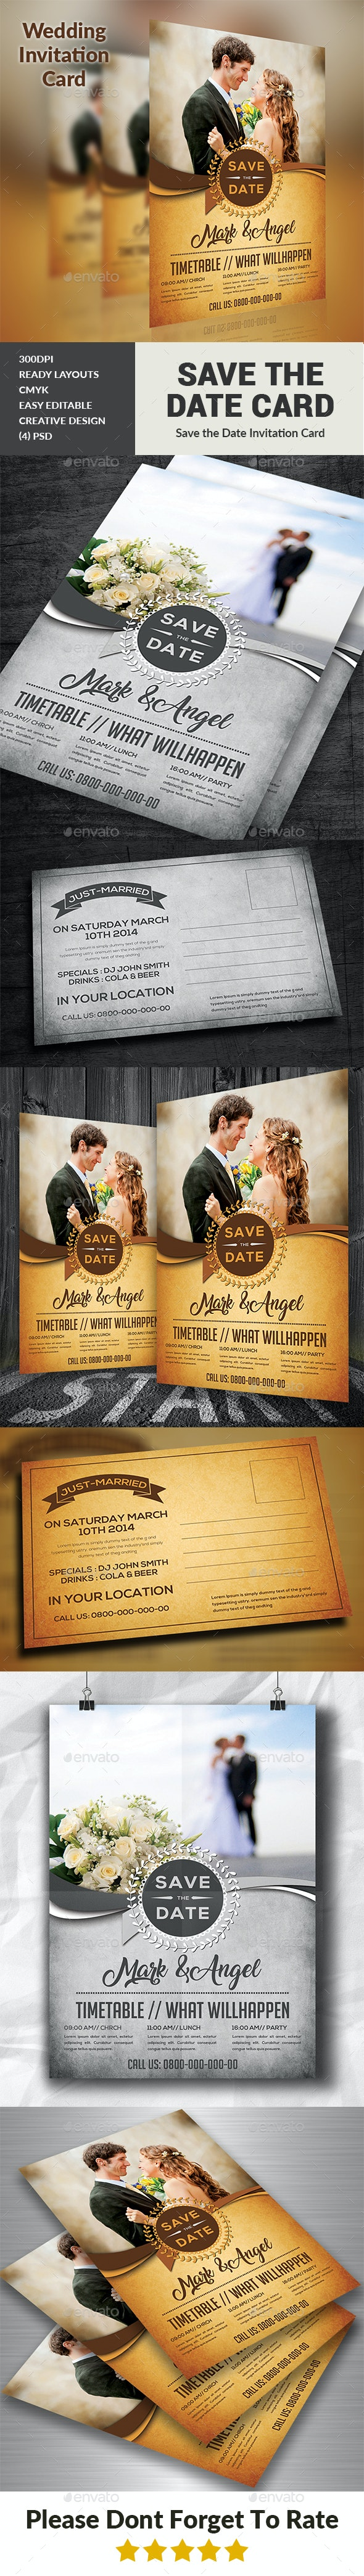 Wedding Invitation - Cards & Invites Print Templates